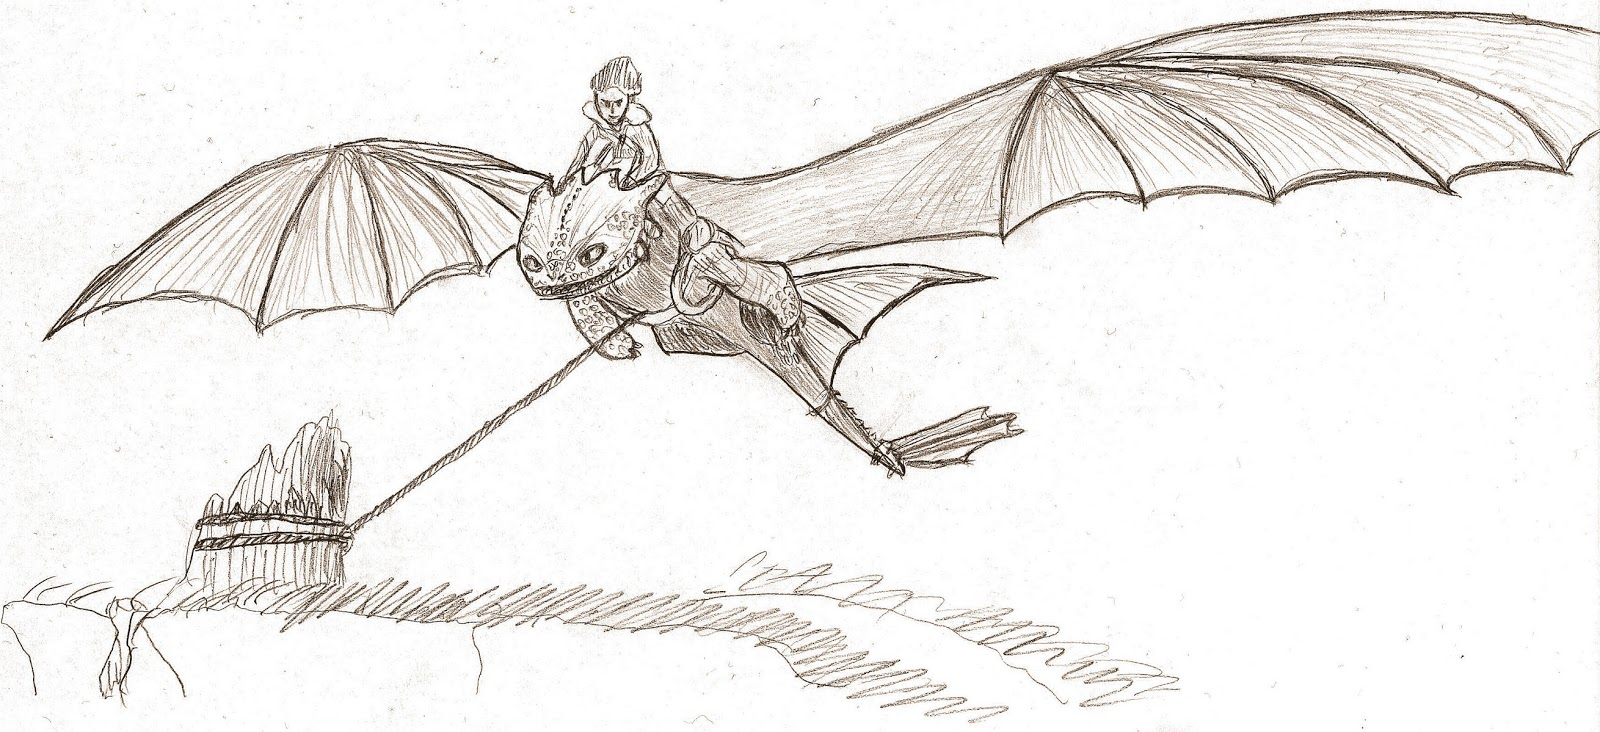 Toothless the Nightfury: Addy's drawings